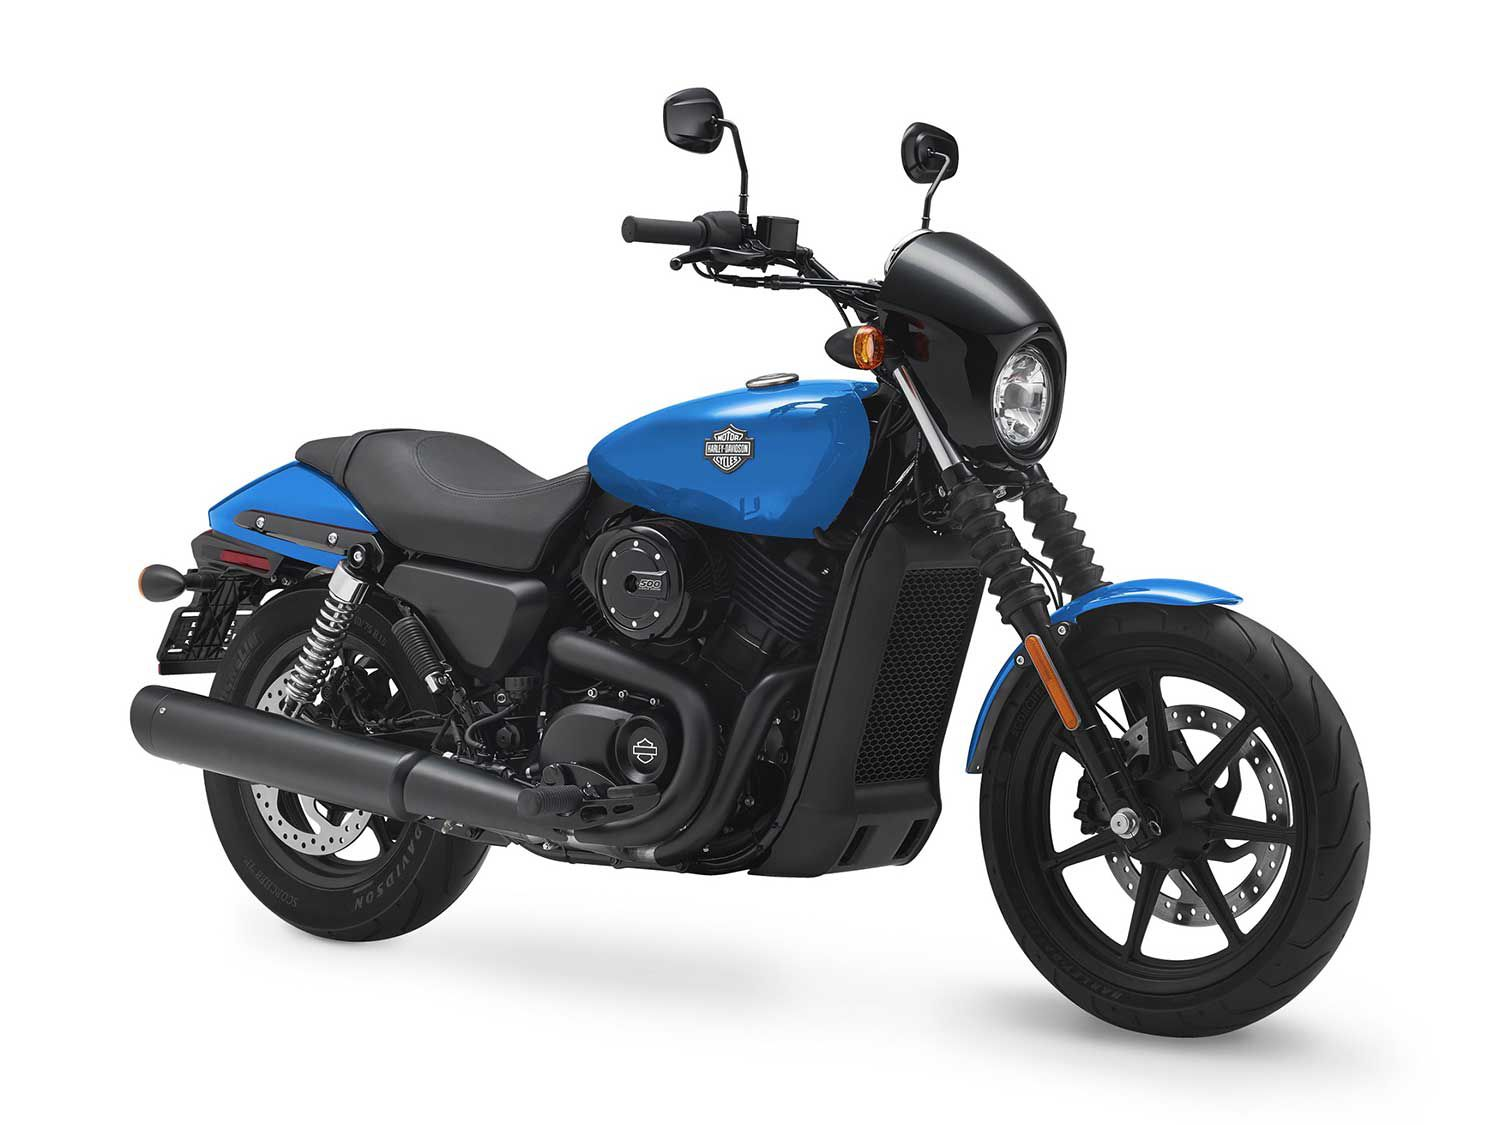 Harley's entry-level Street model is designed for the global market, with a light weight easy maneuverability and an easy buy-in.